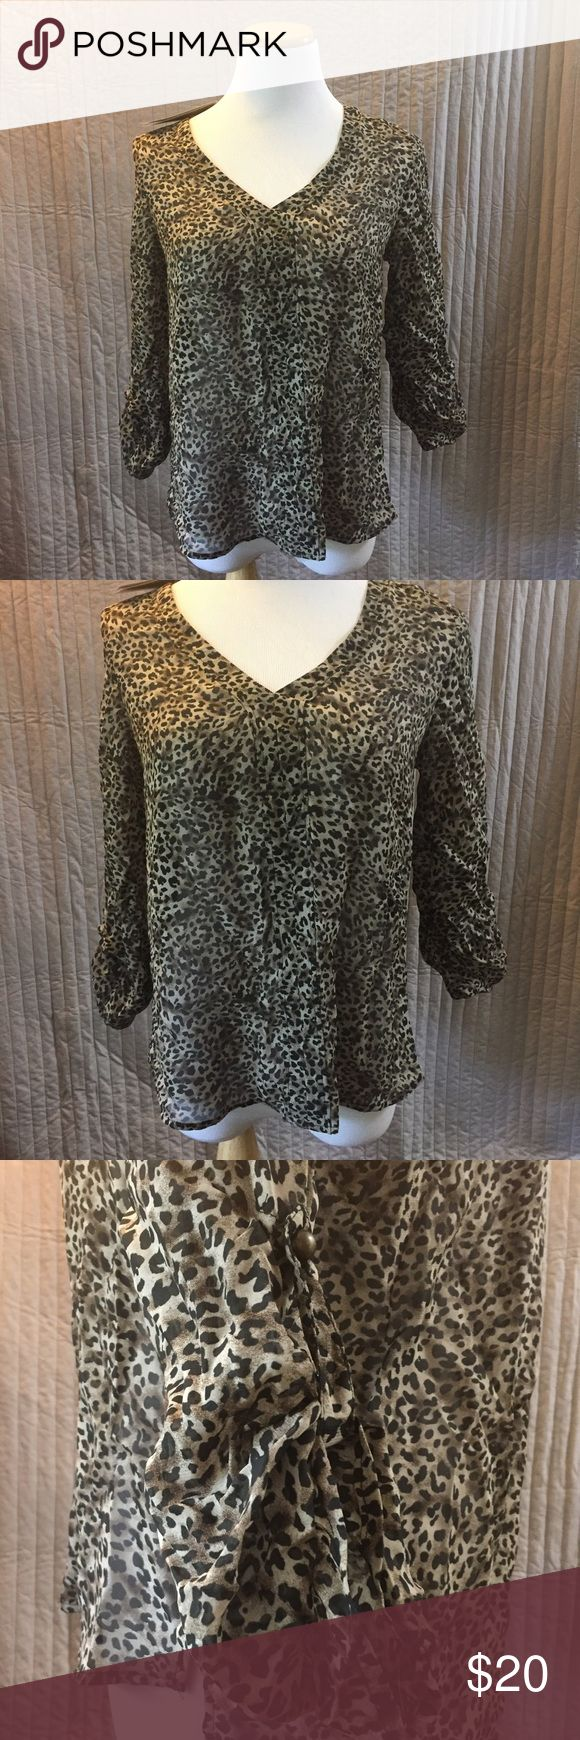 Francesca's Cheetah Print Shirt Brand new Francesca's Cheetah printed shirt. Size SM, the bottom of the sleeves have a button, deep V in the front, and 100% polyester. Francesca's Collections Tops